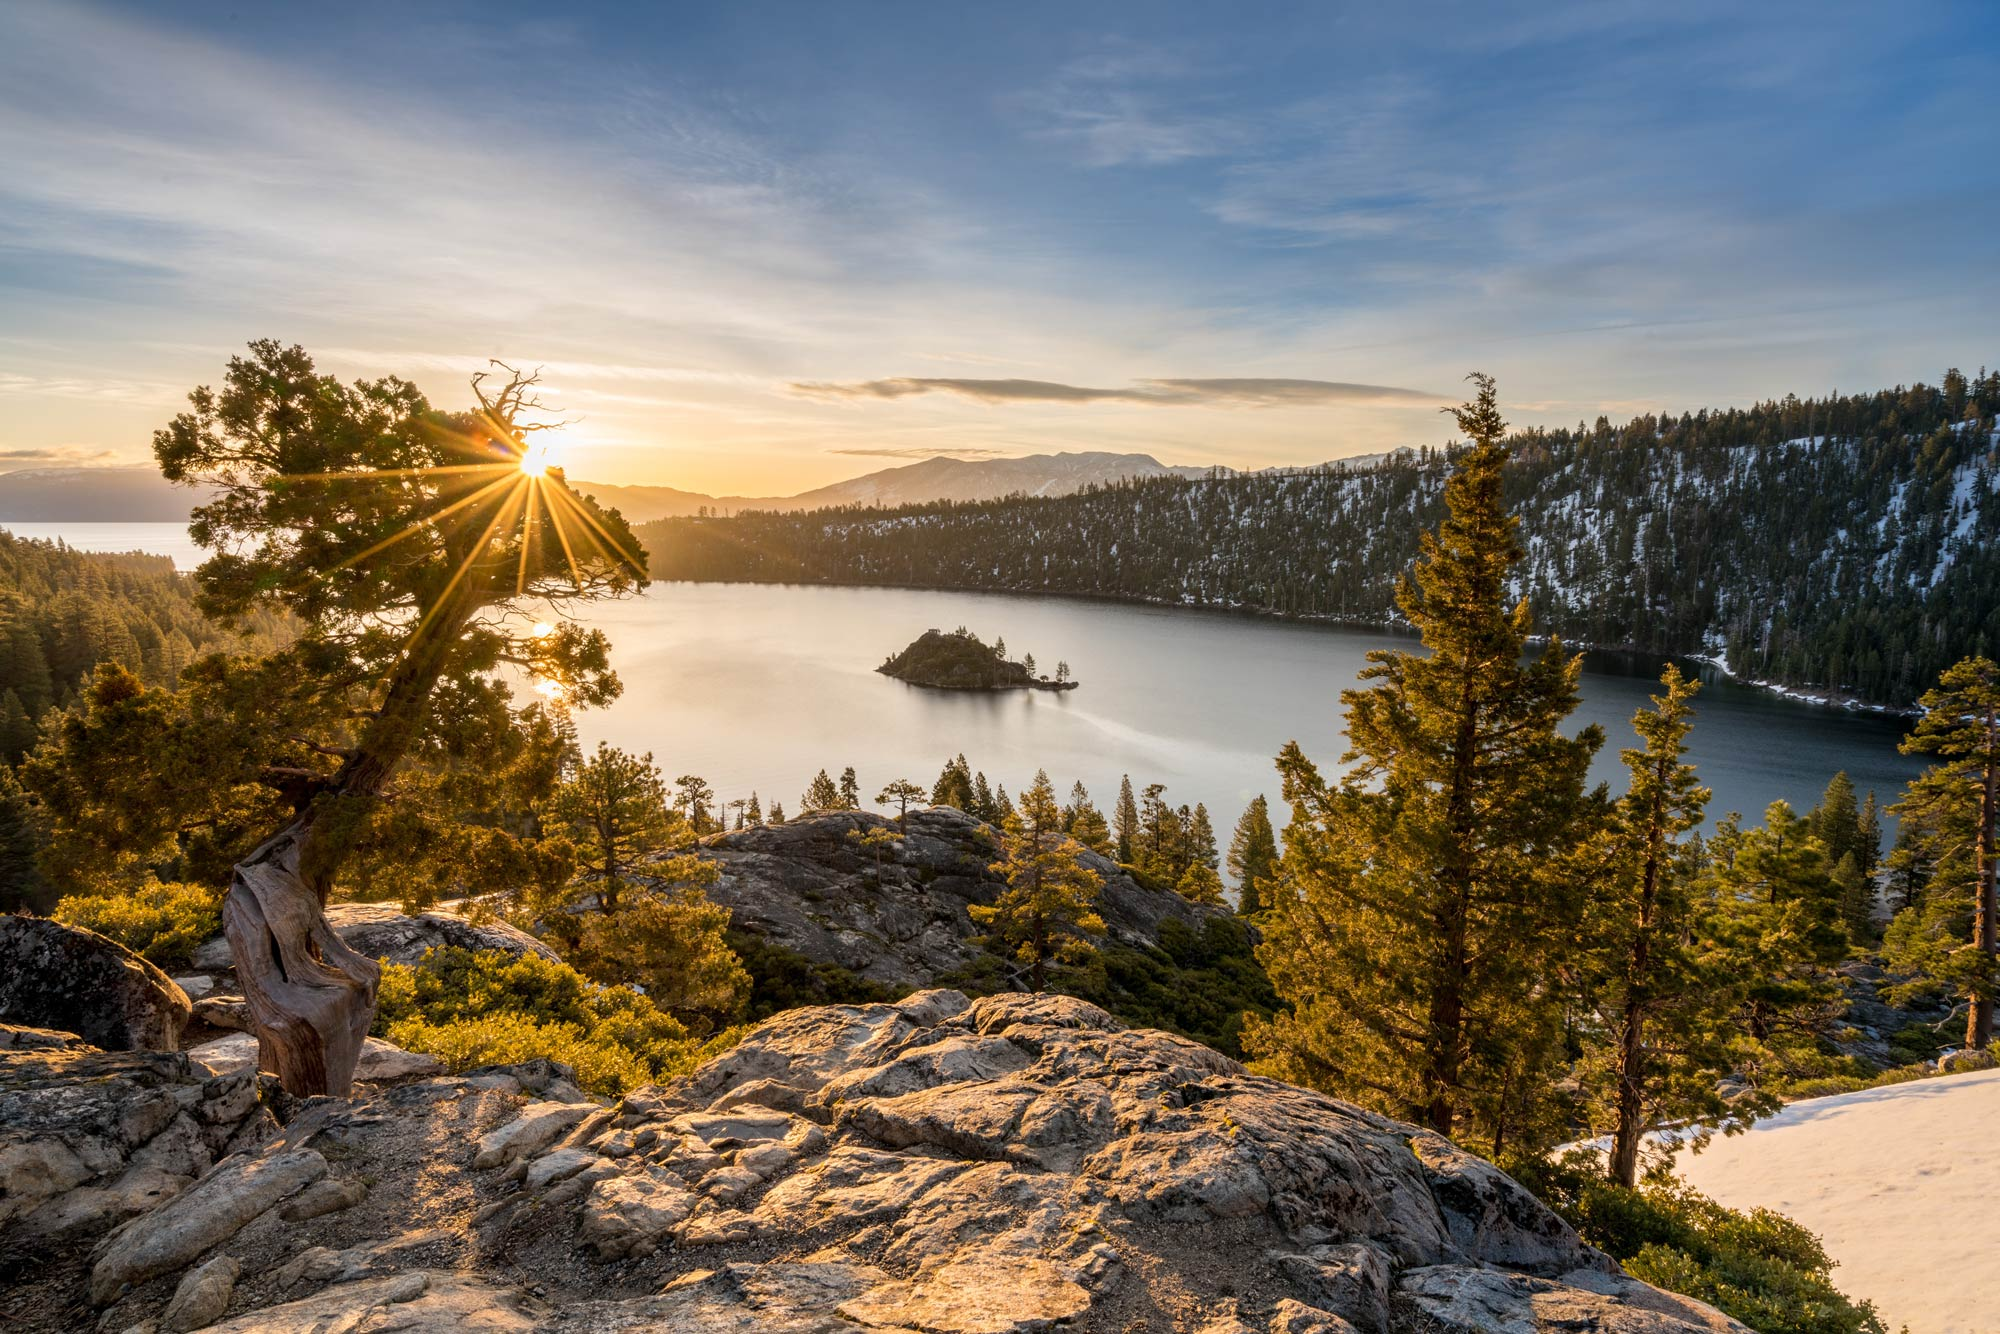 A shore of Lake Tahoe with vegetation and trees